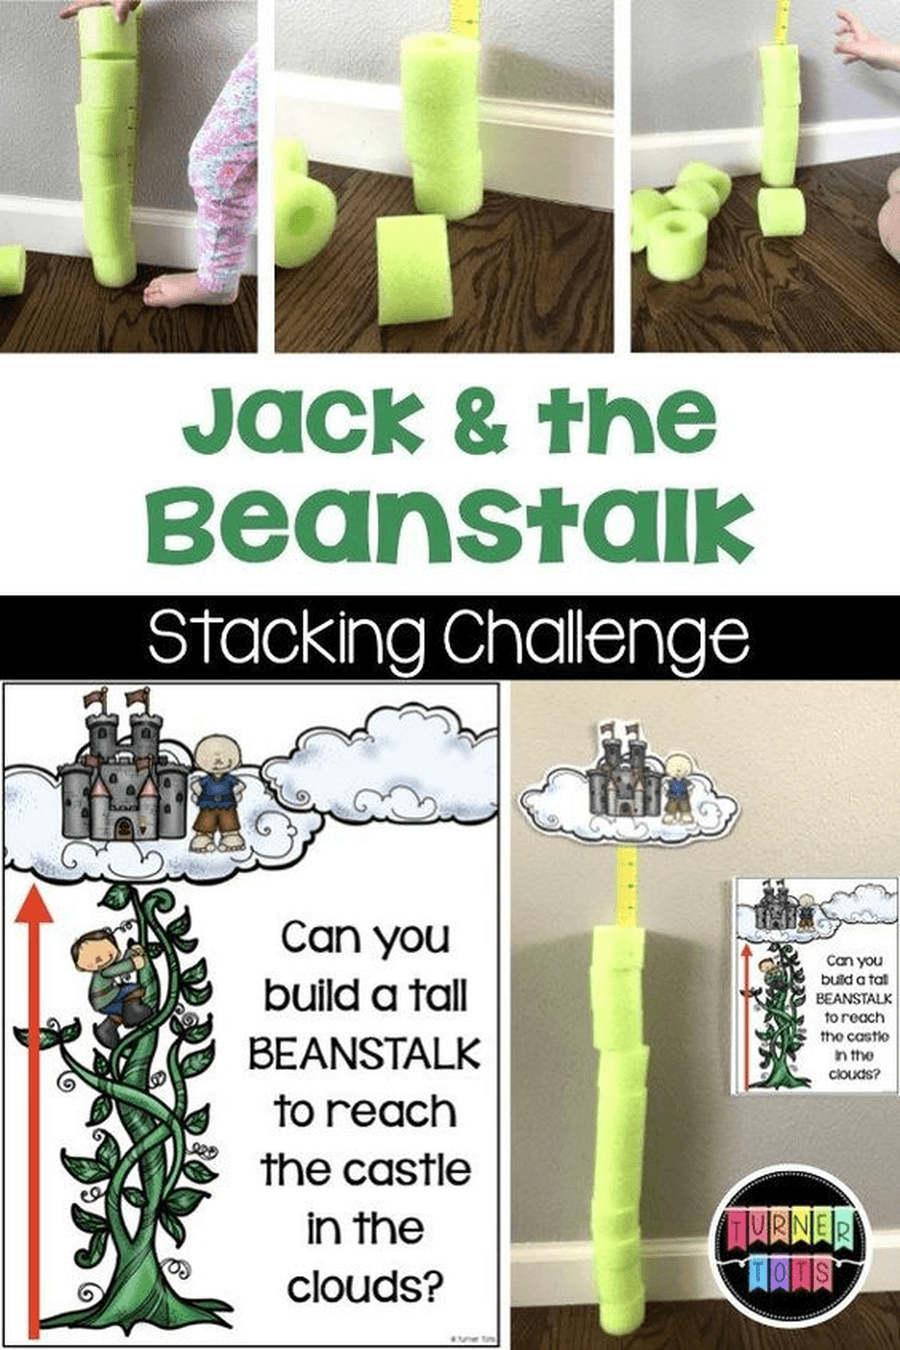 Can you build a beanstalk to reach the castle in the clouds? You could use anything in your home, boxes, cushions, Lego bricks or tins. How tall can you make it before it falls over? Are some things easier to build with than others? How can you make your stalk stronger?